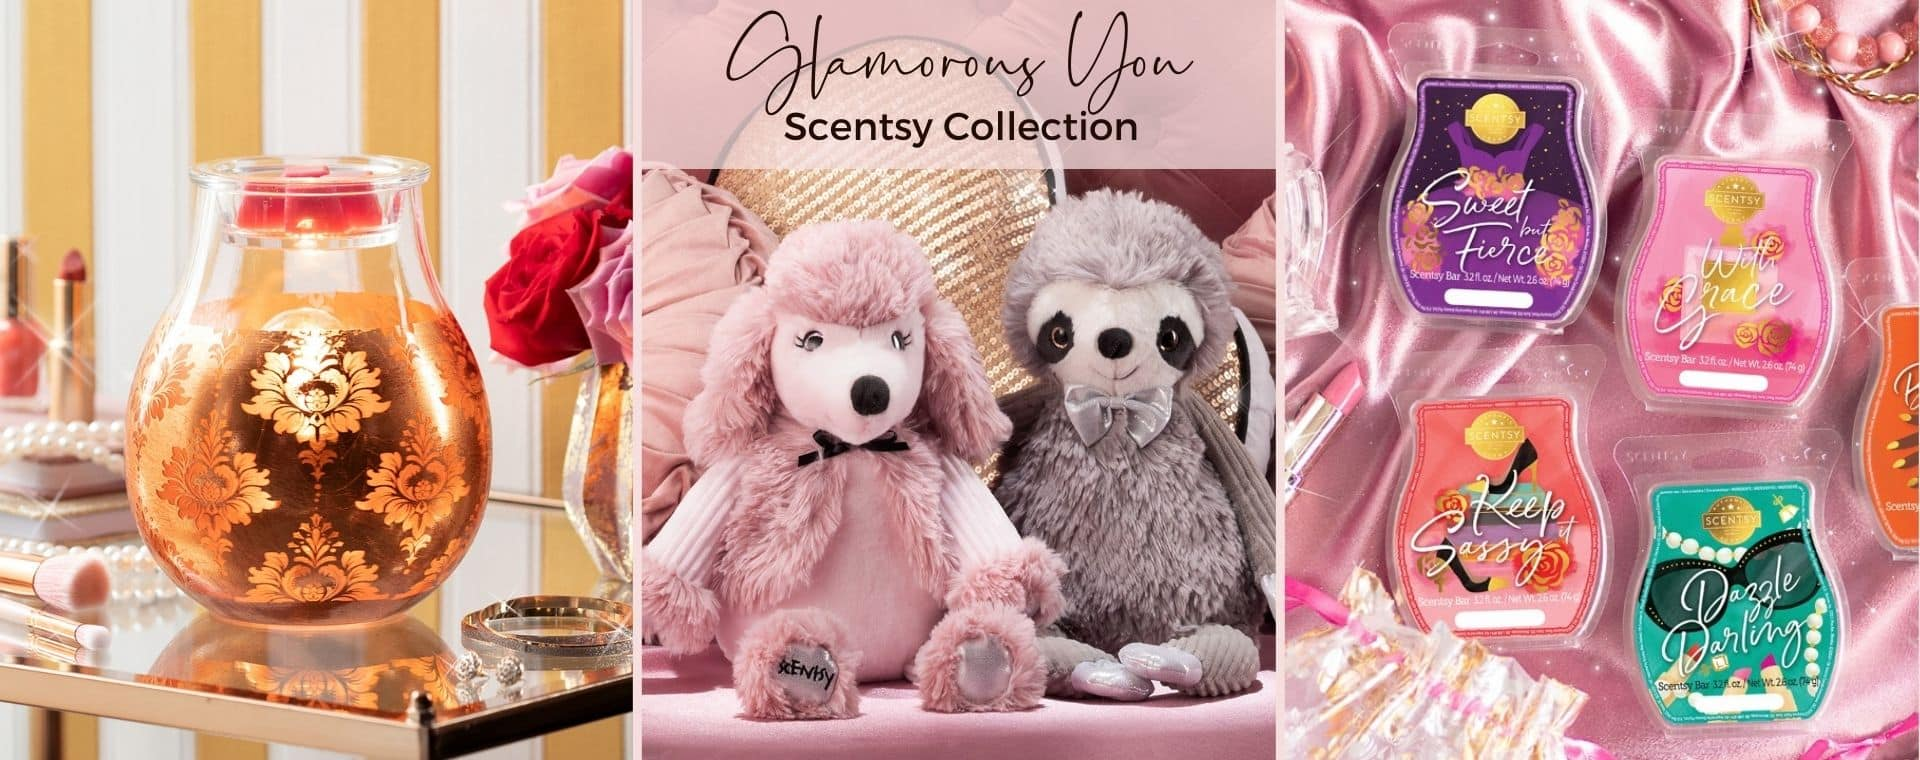 Glamorous You Scentsy Collection 3